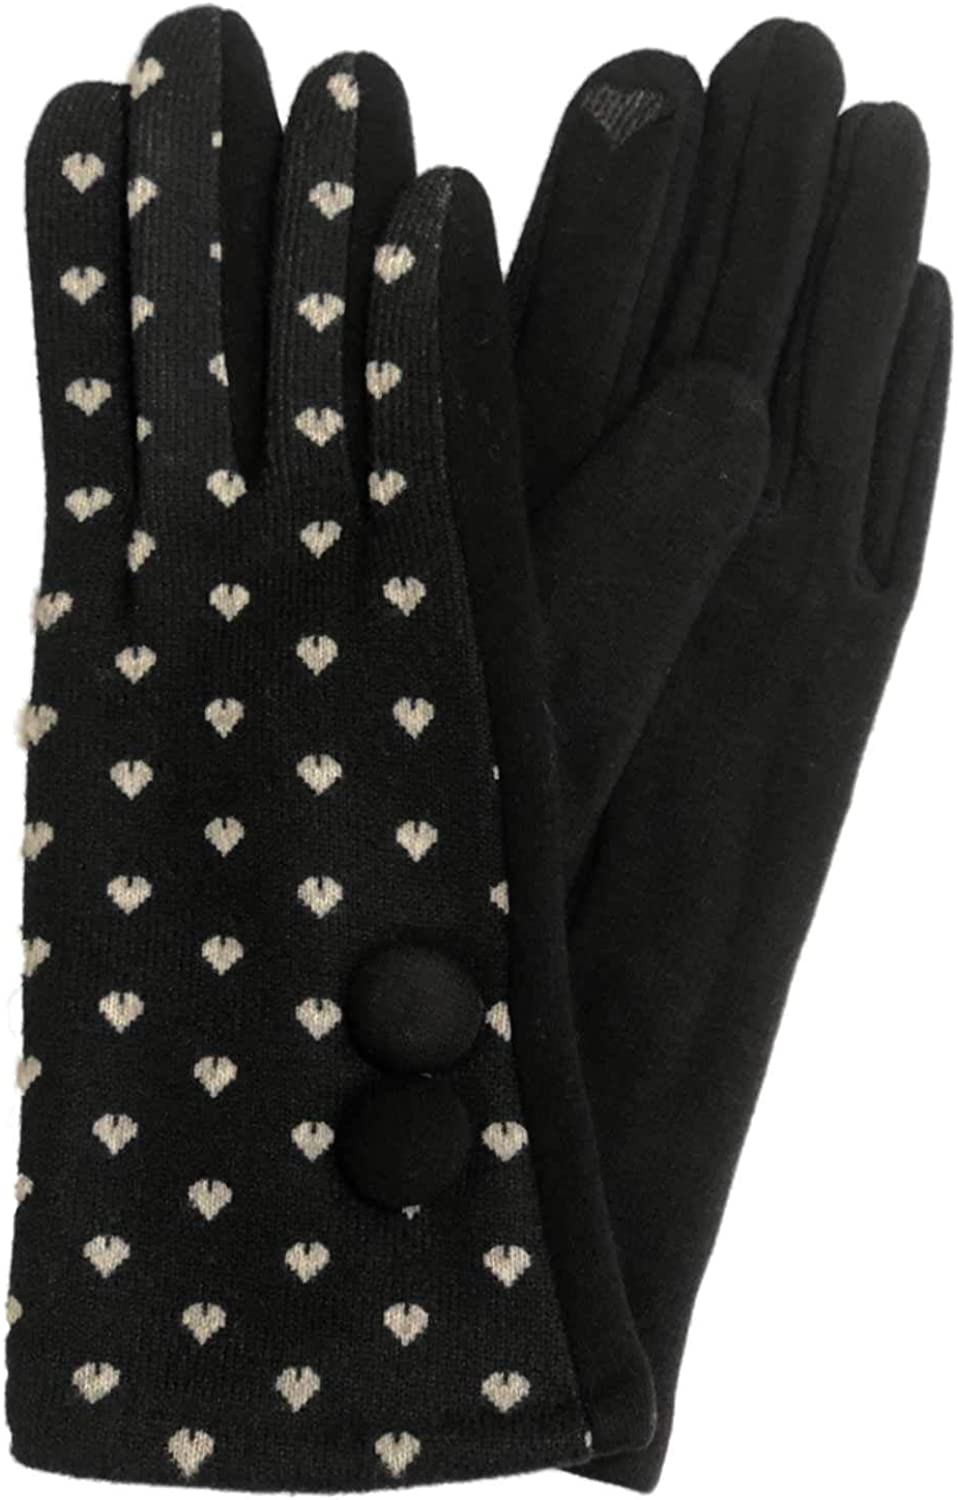 Womens Black & White Hearts Stretch Fit Texting & Tech Touchscreen Gloves